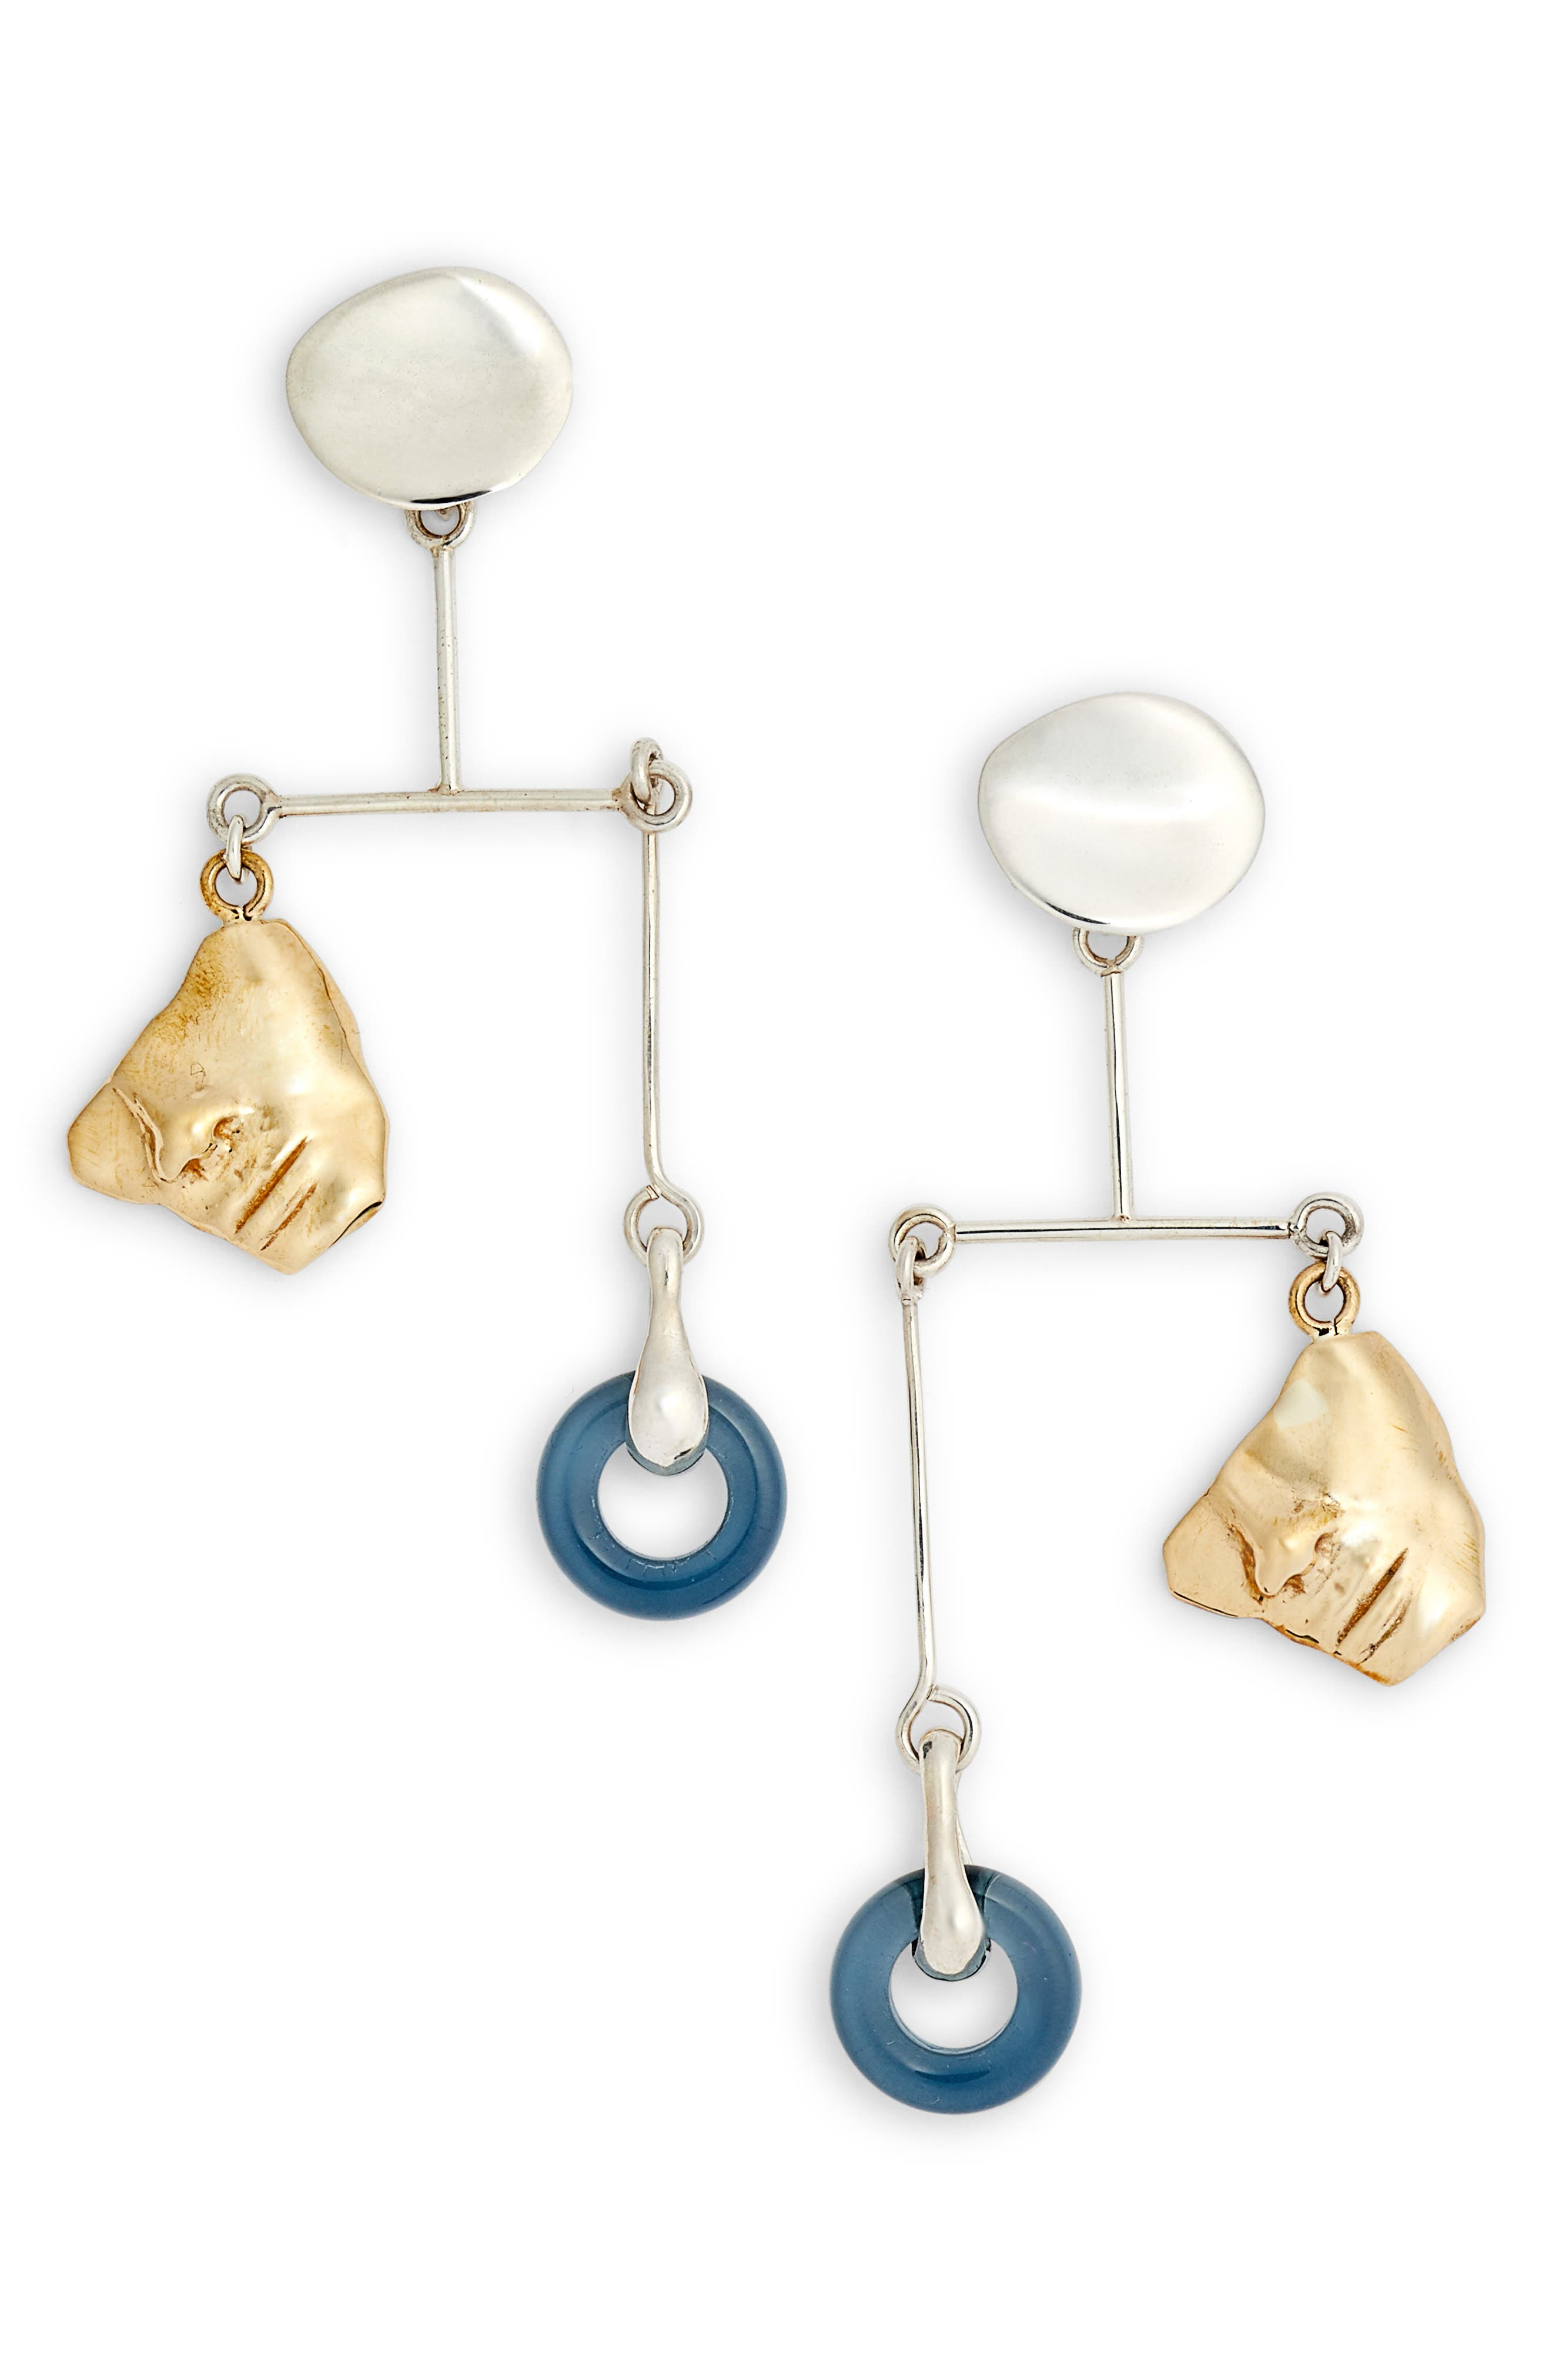 Portra Mobile Earrings,                         Main,                         color, STERLING SILVER/ BRONZE/ GLASS